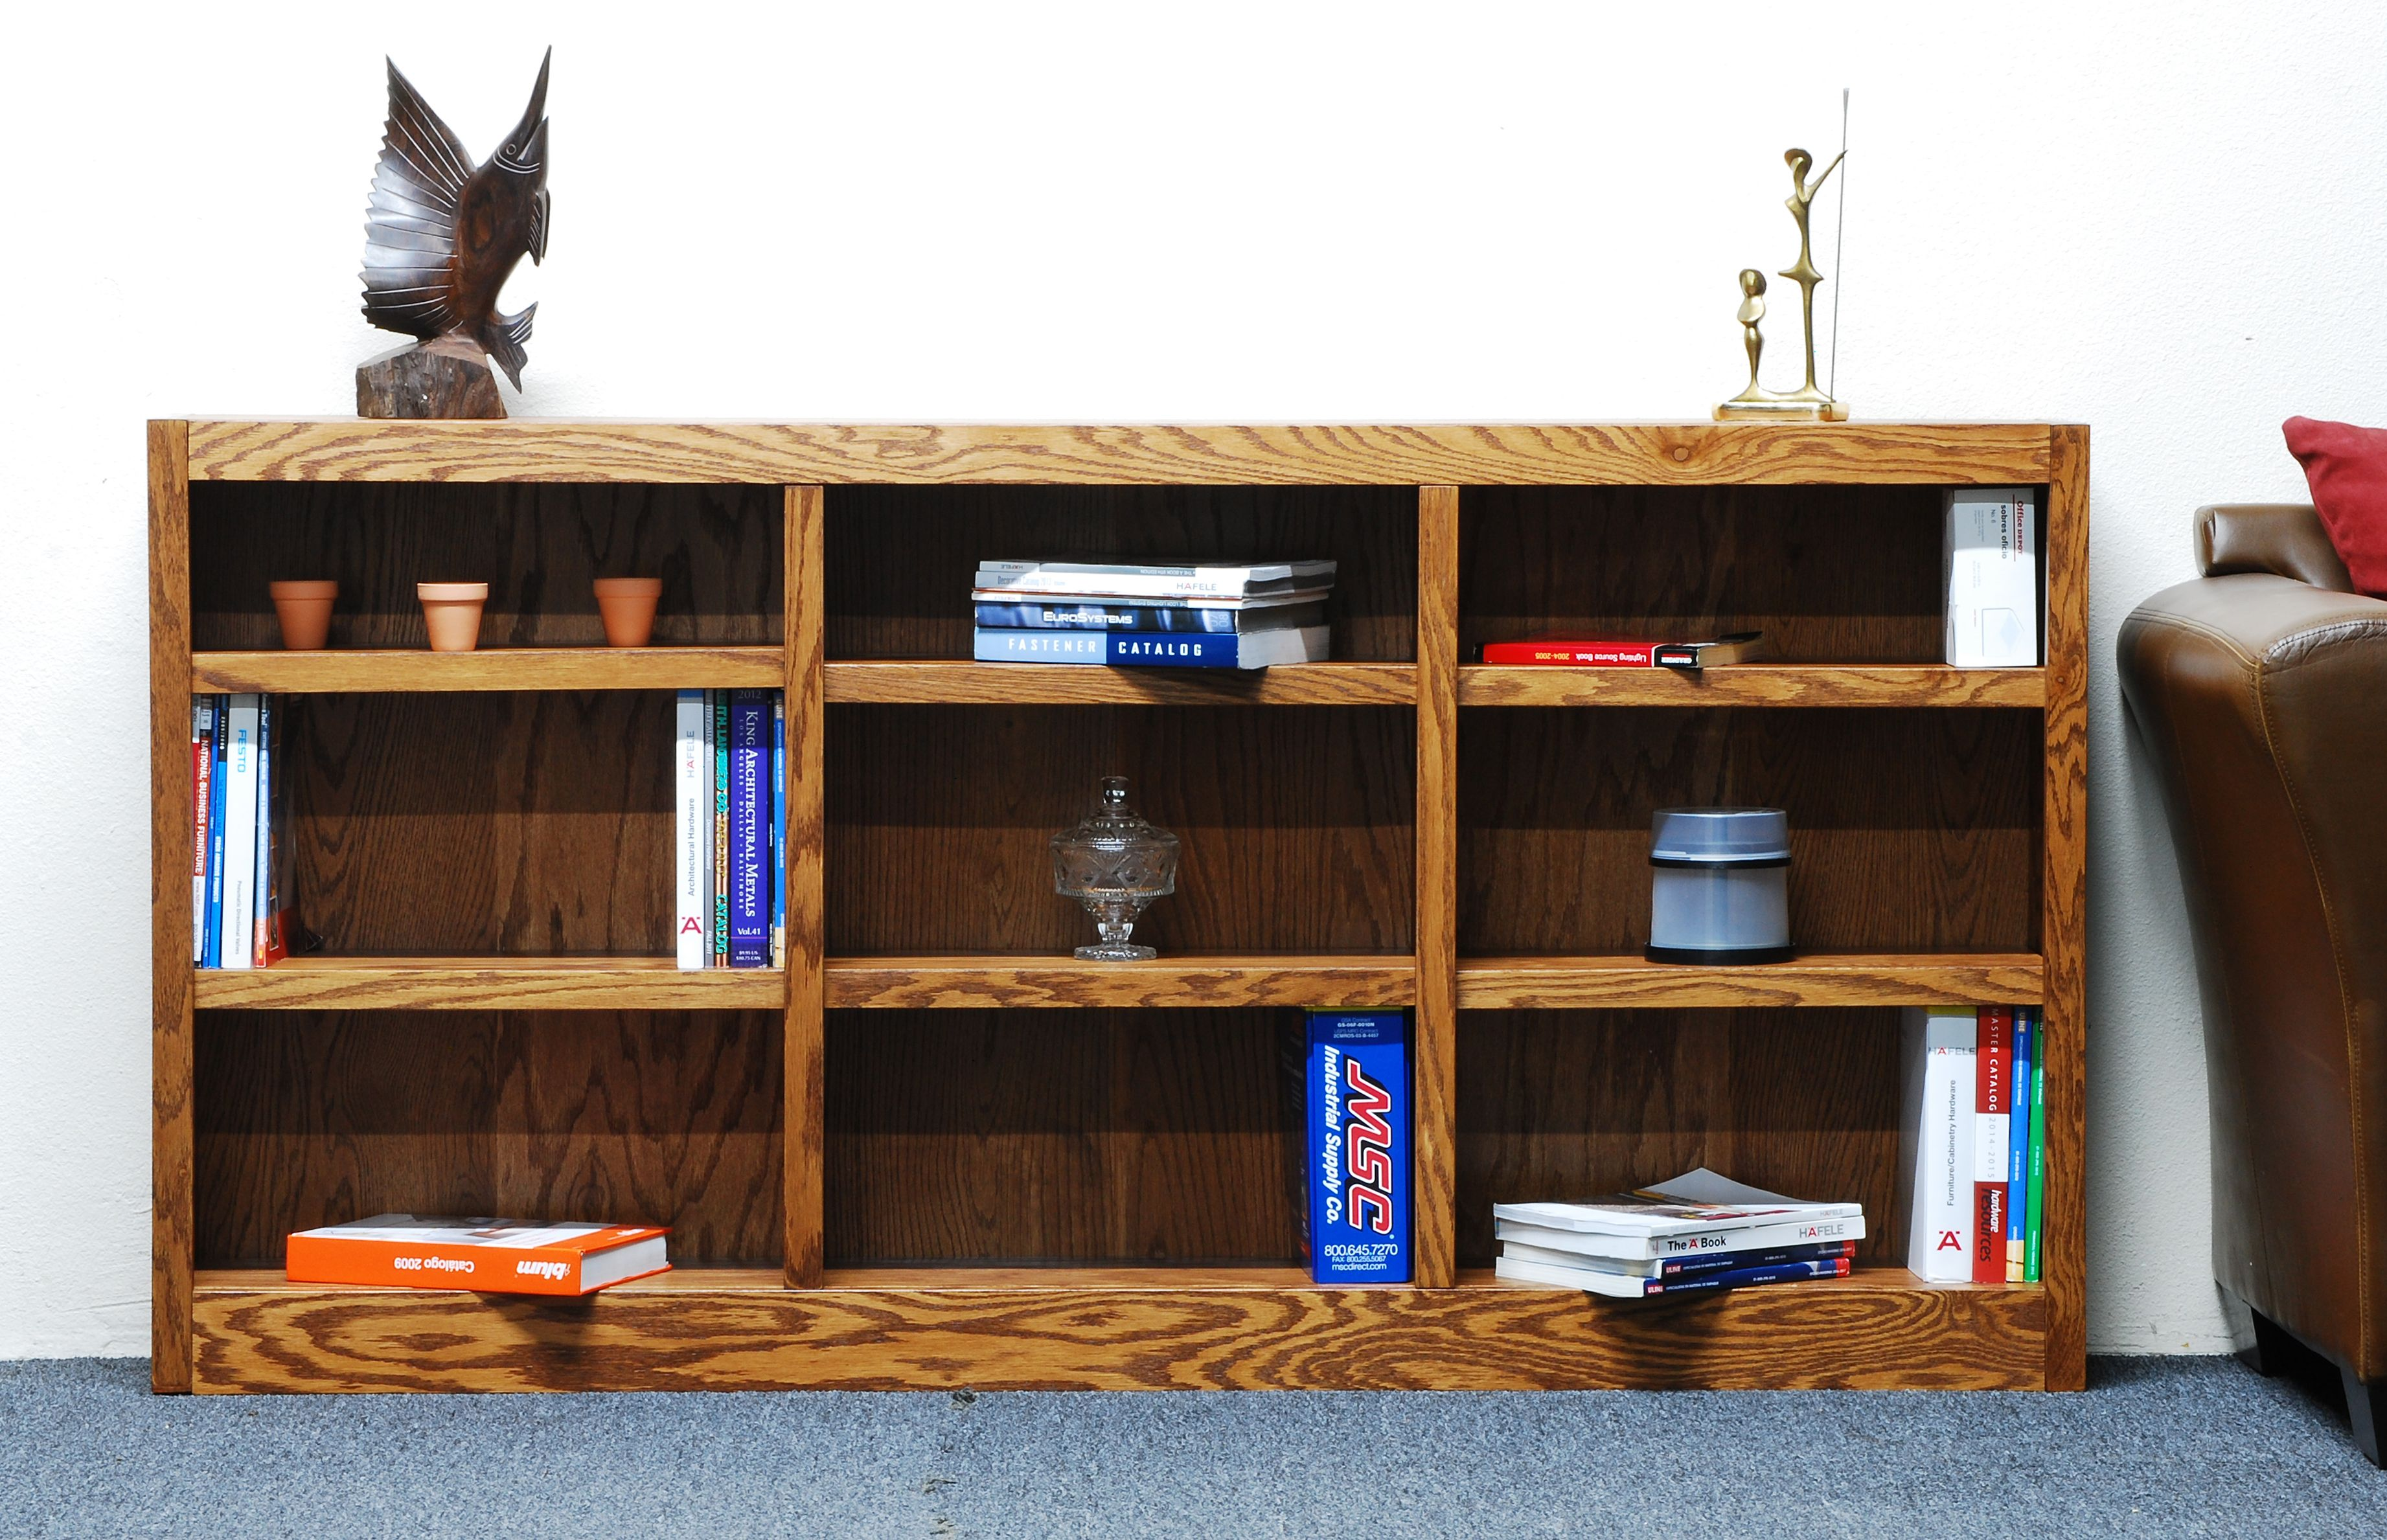 Concepts in Wood 9 Shelf Triple Wide Wood Bookcase, 36 inch Tall